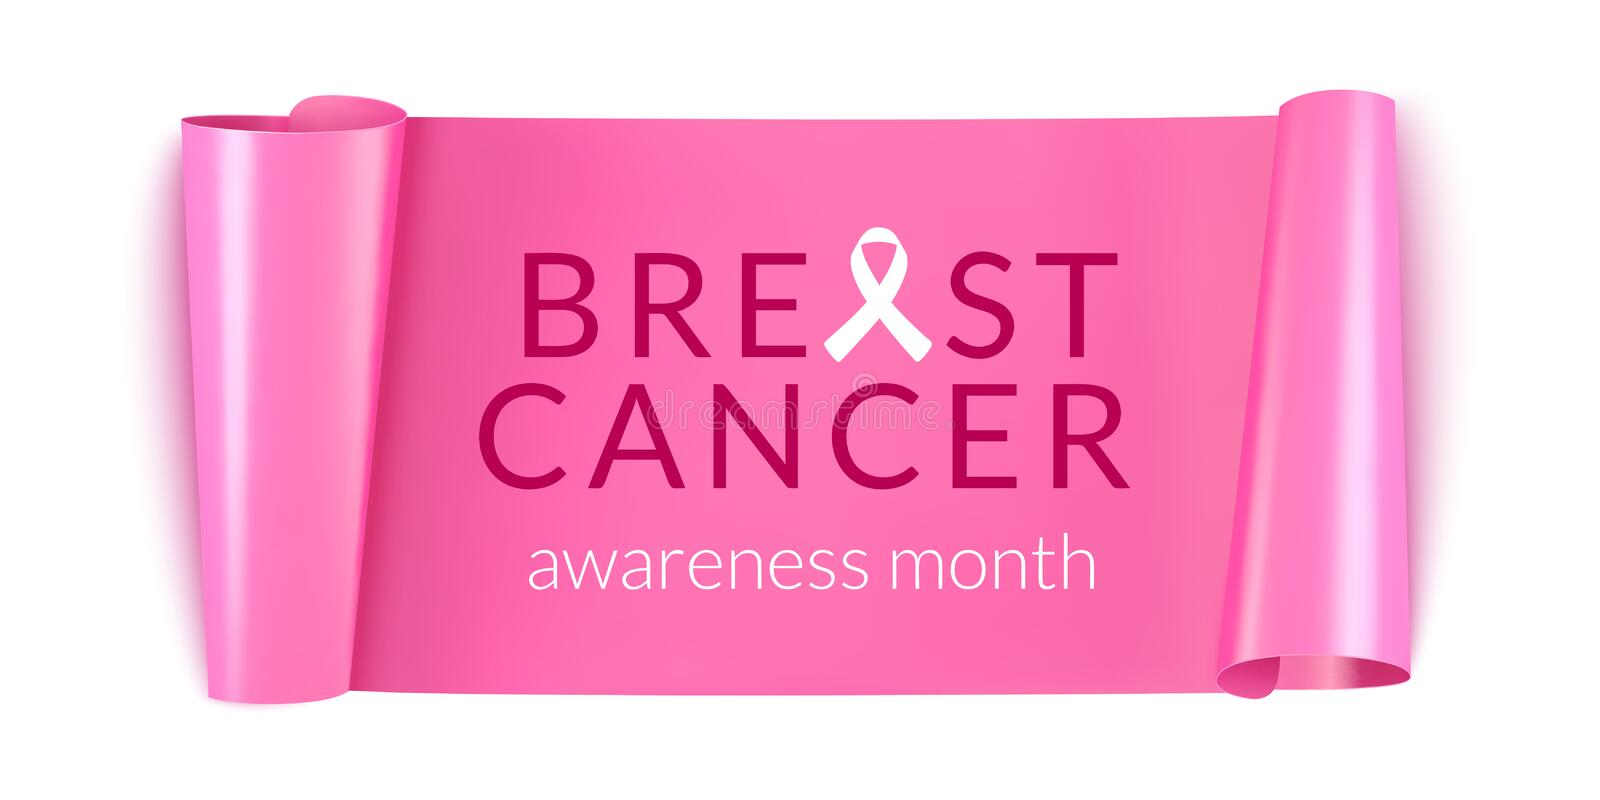 Breast Cancer awareness month horizontal banner. Pink Ribbon isolated. royalty free illustration